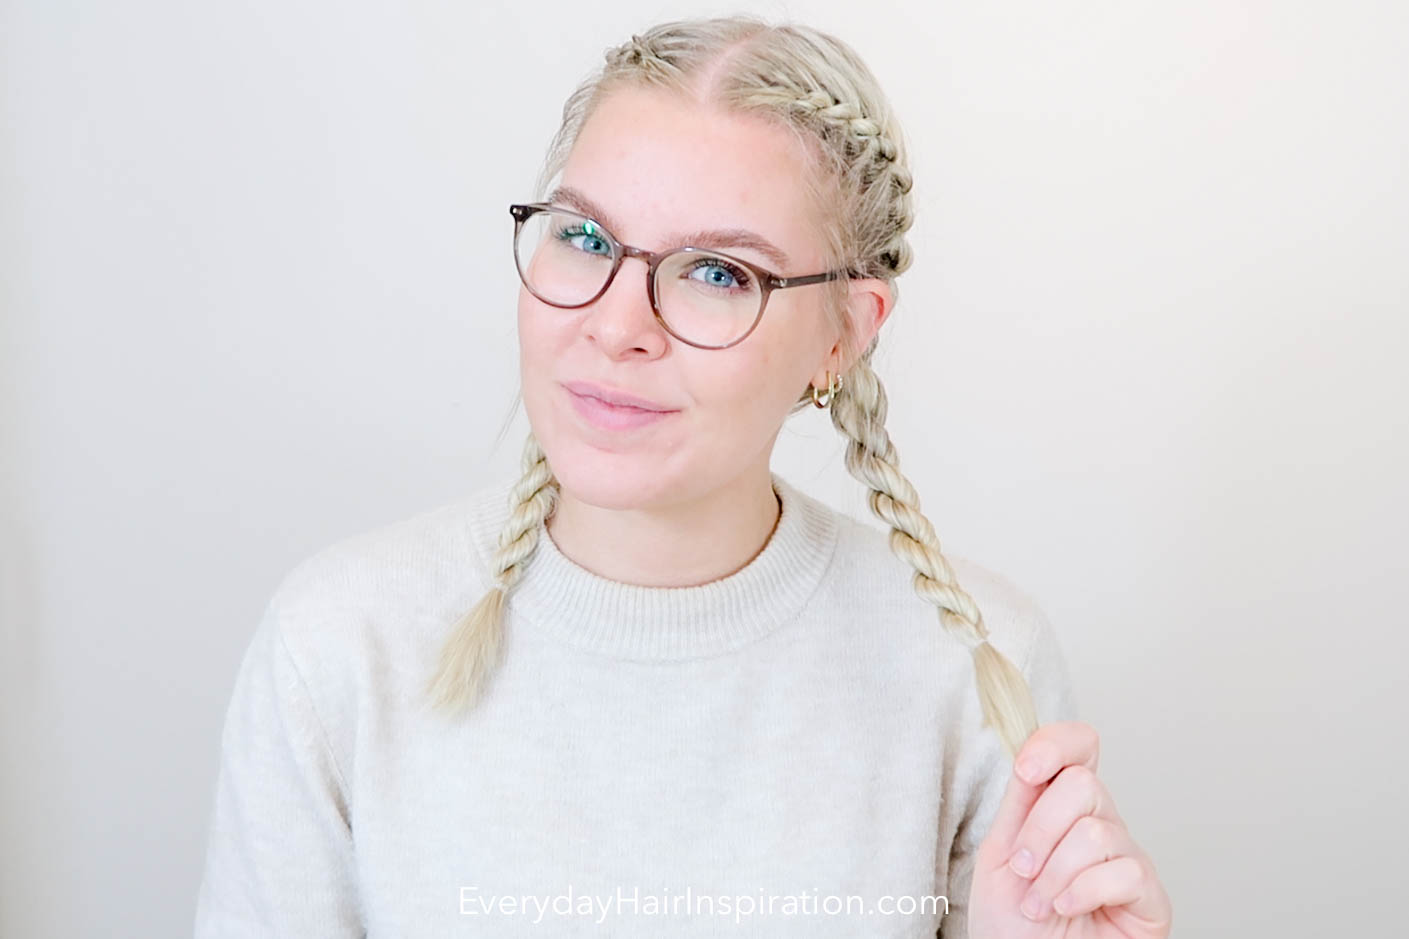 Blonde girl seen from the front, looking into the camera with her hair braided into double French rope braids, holding one braid in her hand.